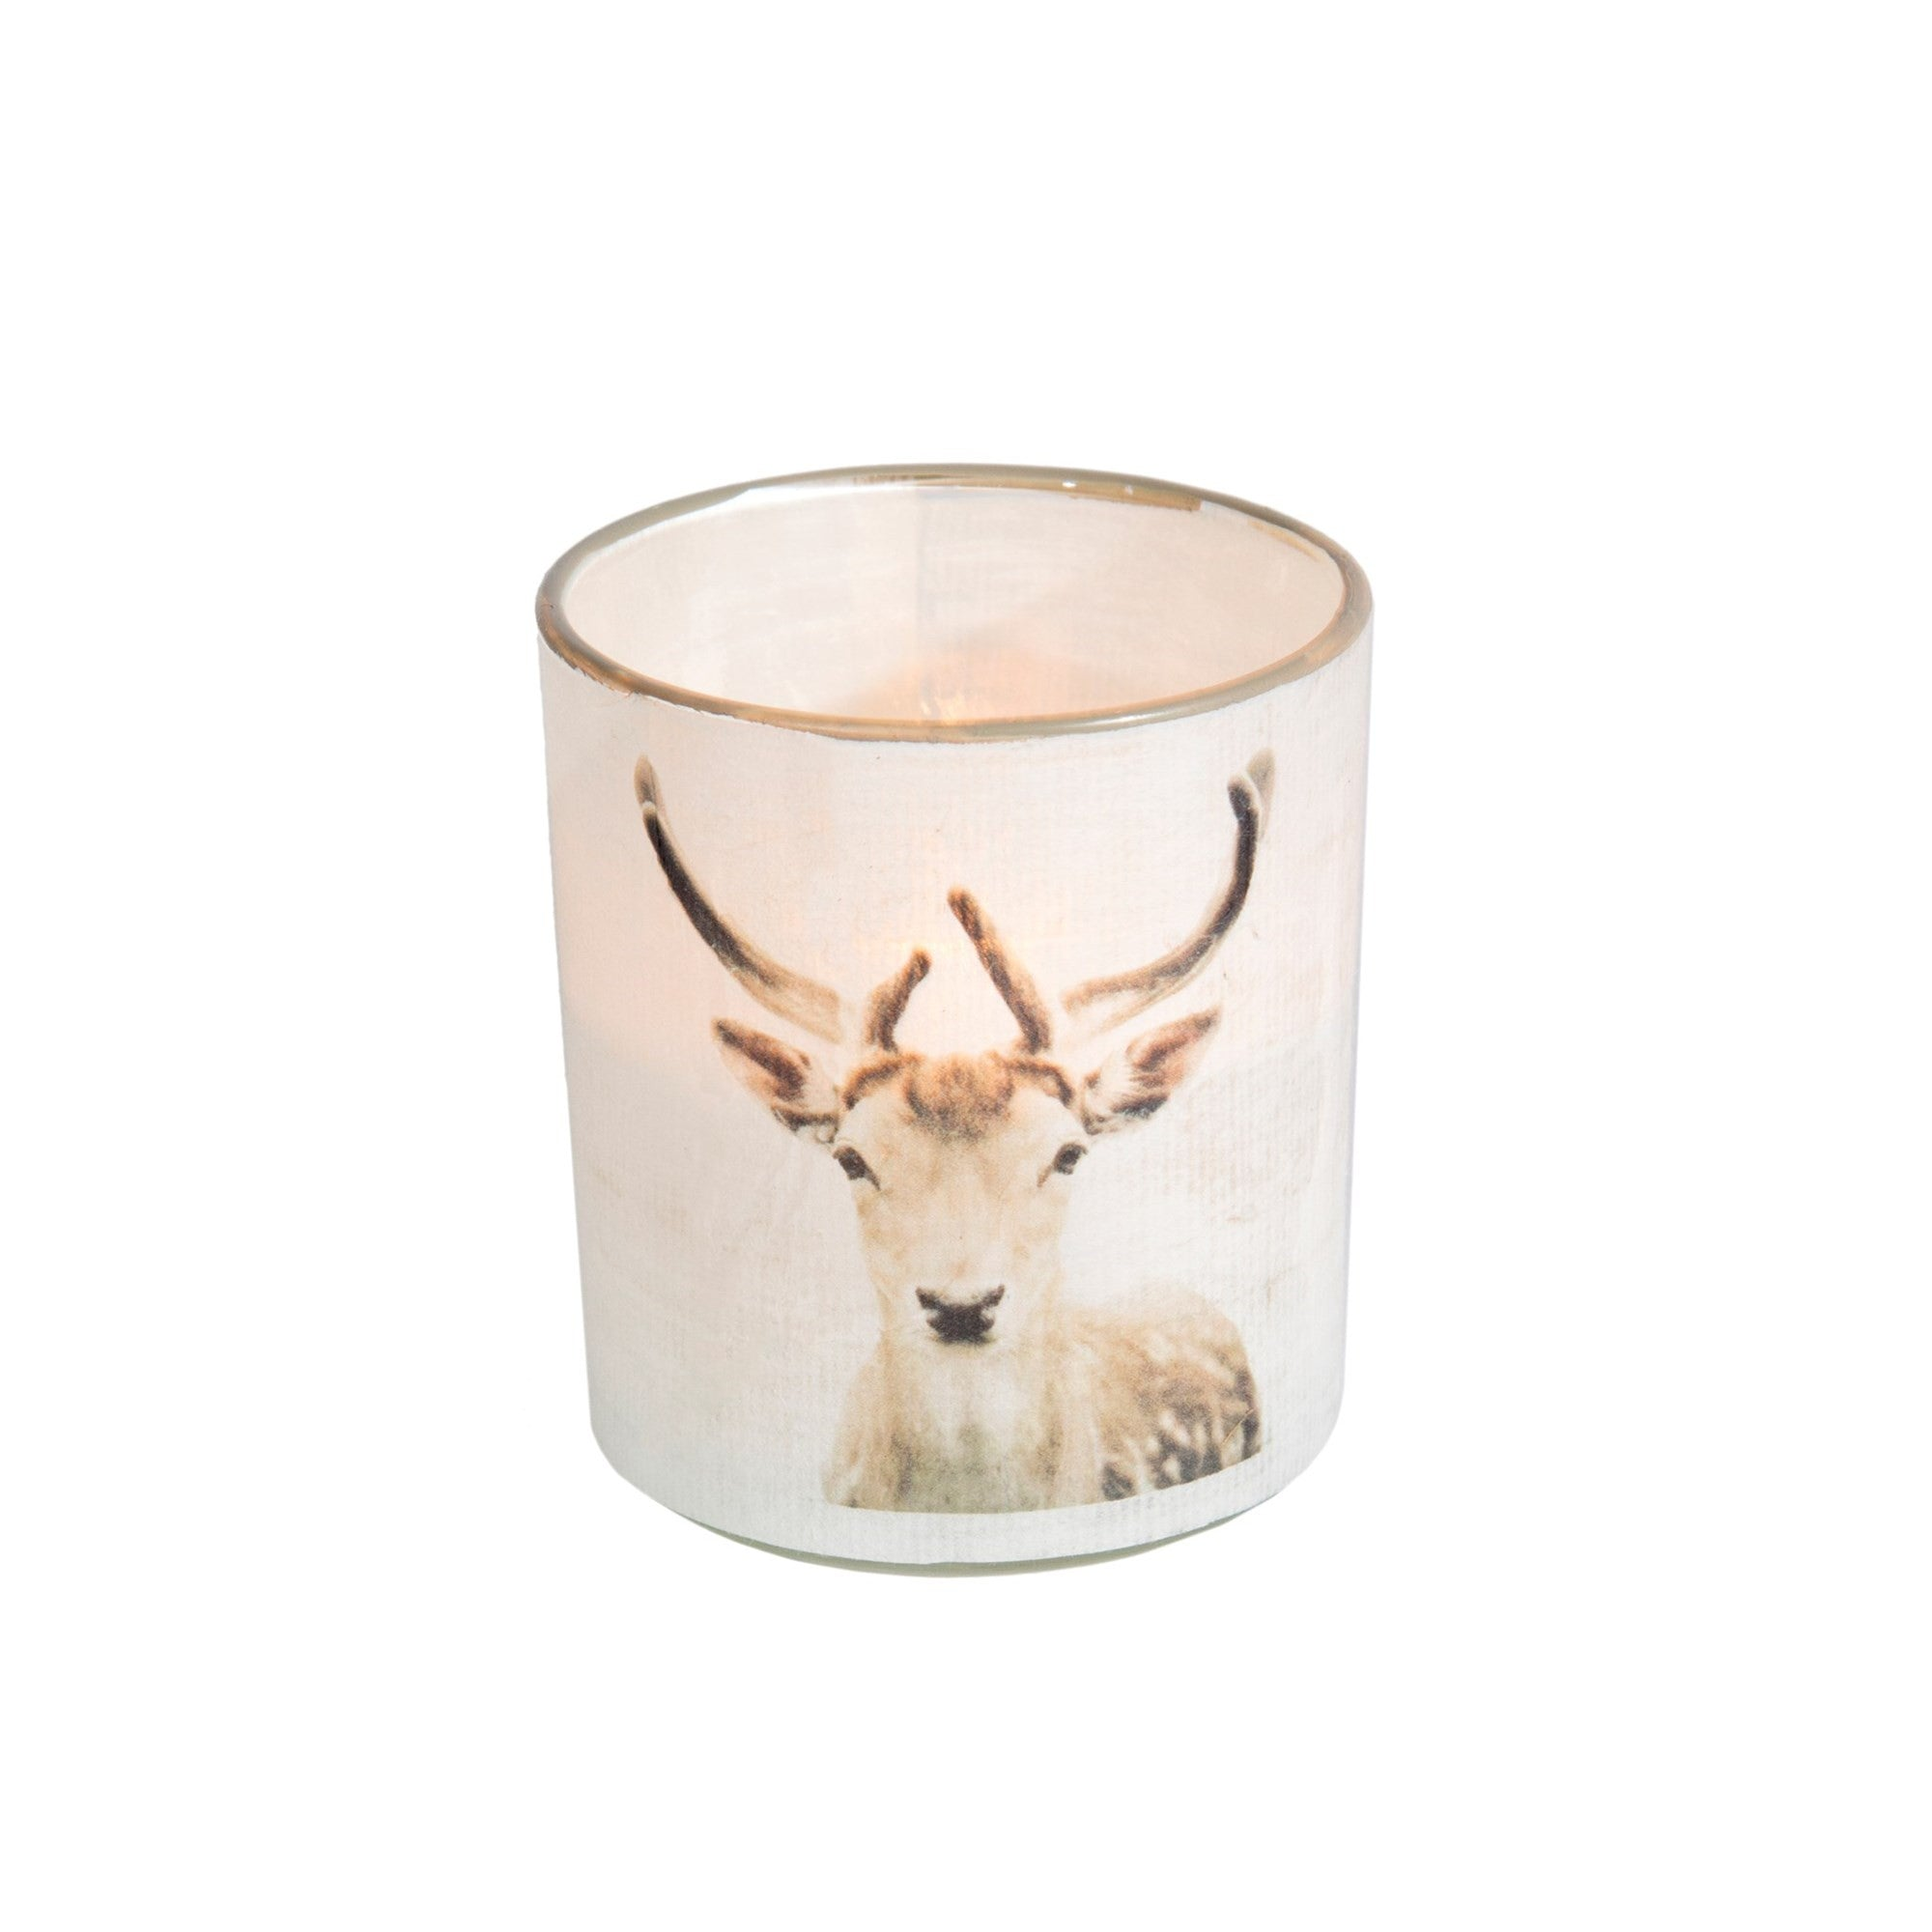 Deer Head Tea Light Holder